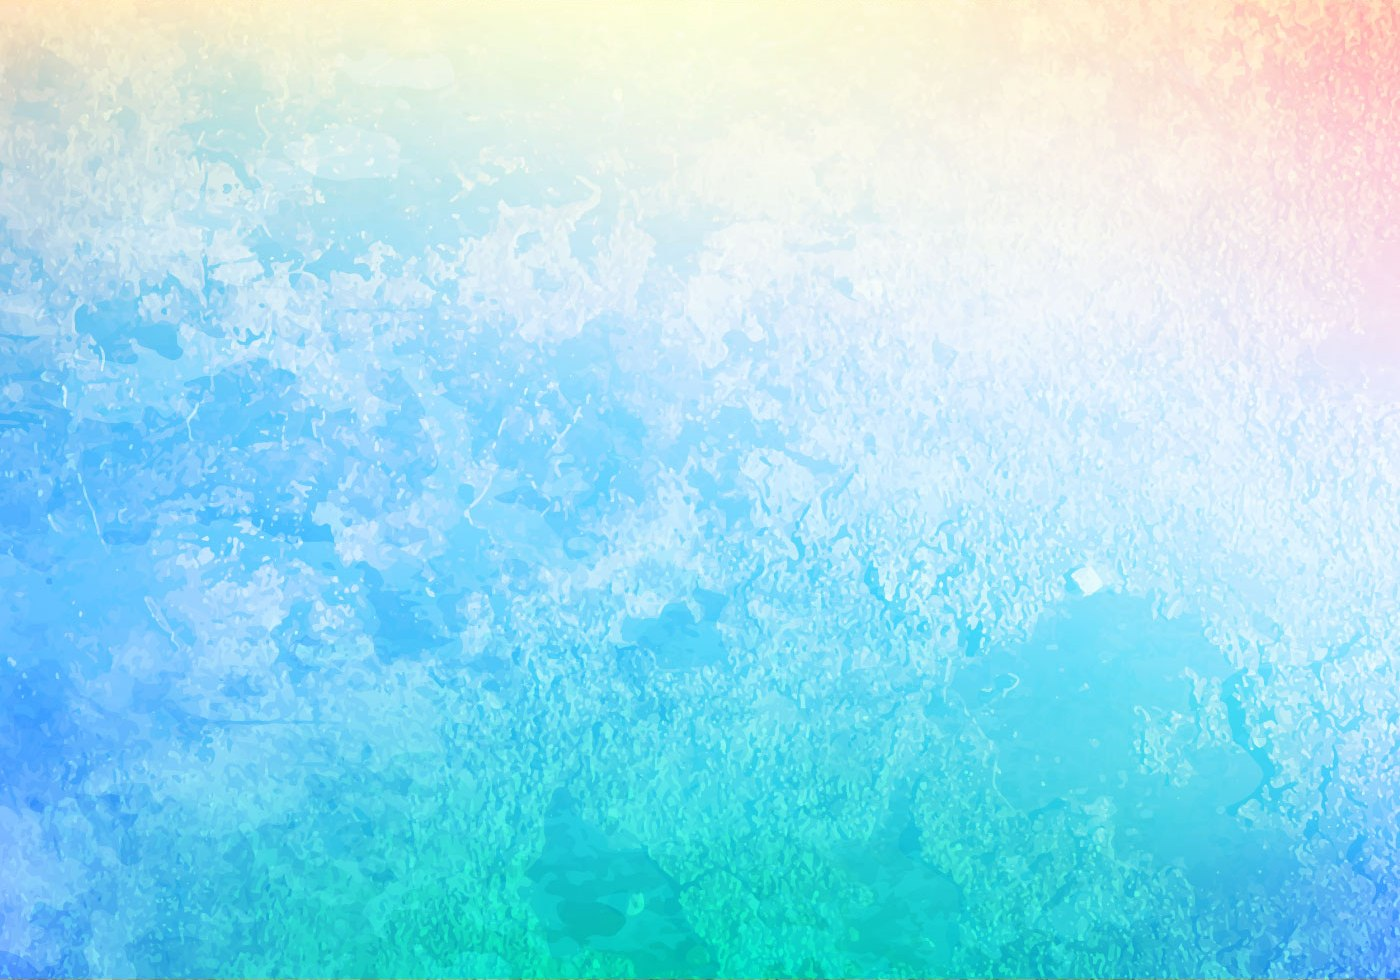 Blue Grunge Free Vector Texture - Download Free Vector Art ...